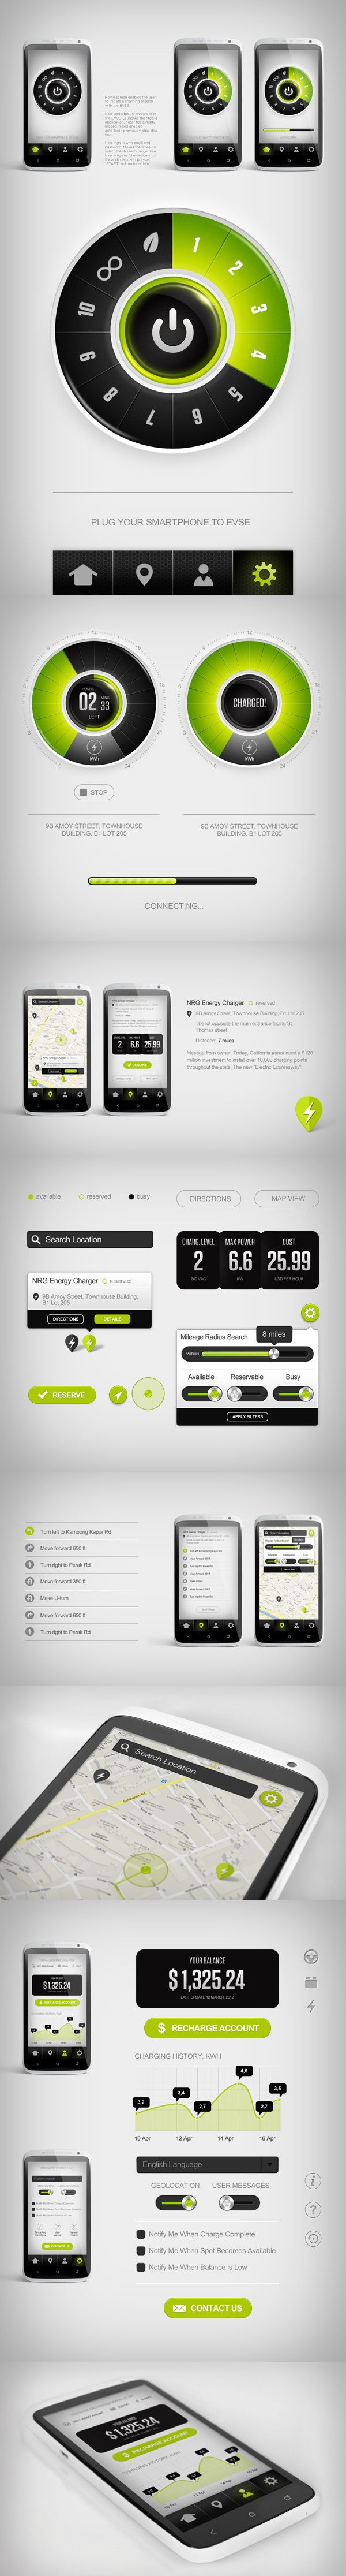 Greenlots User Interface